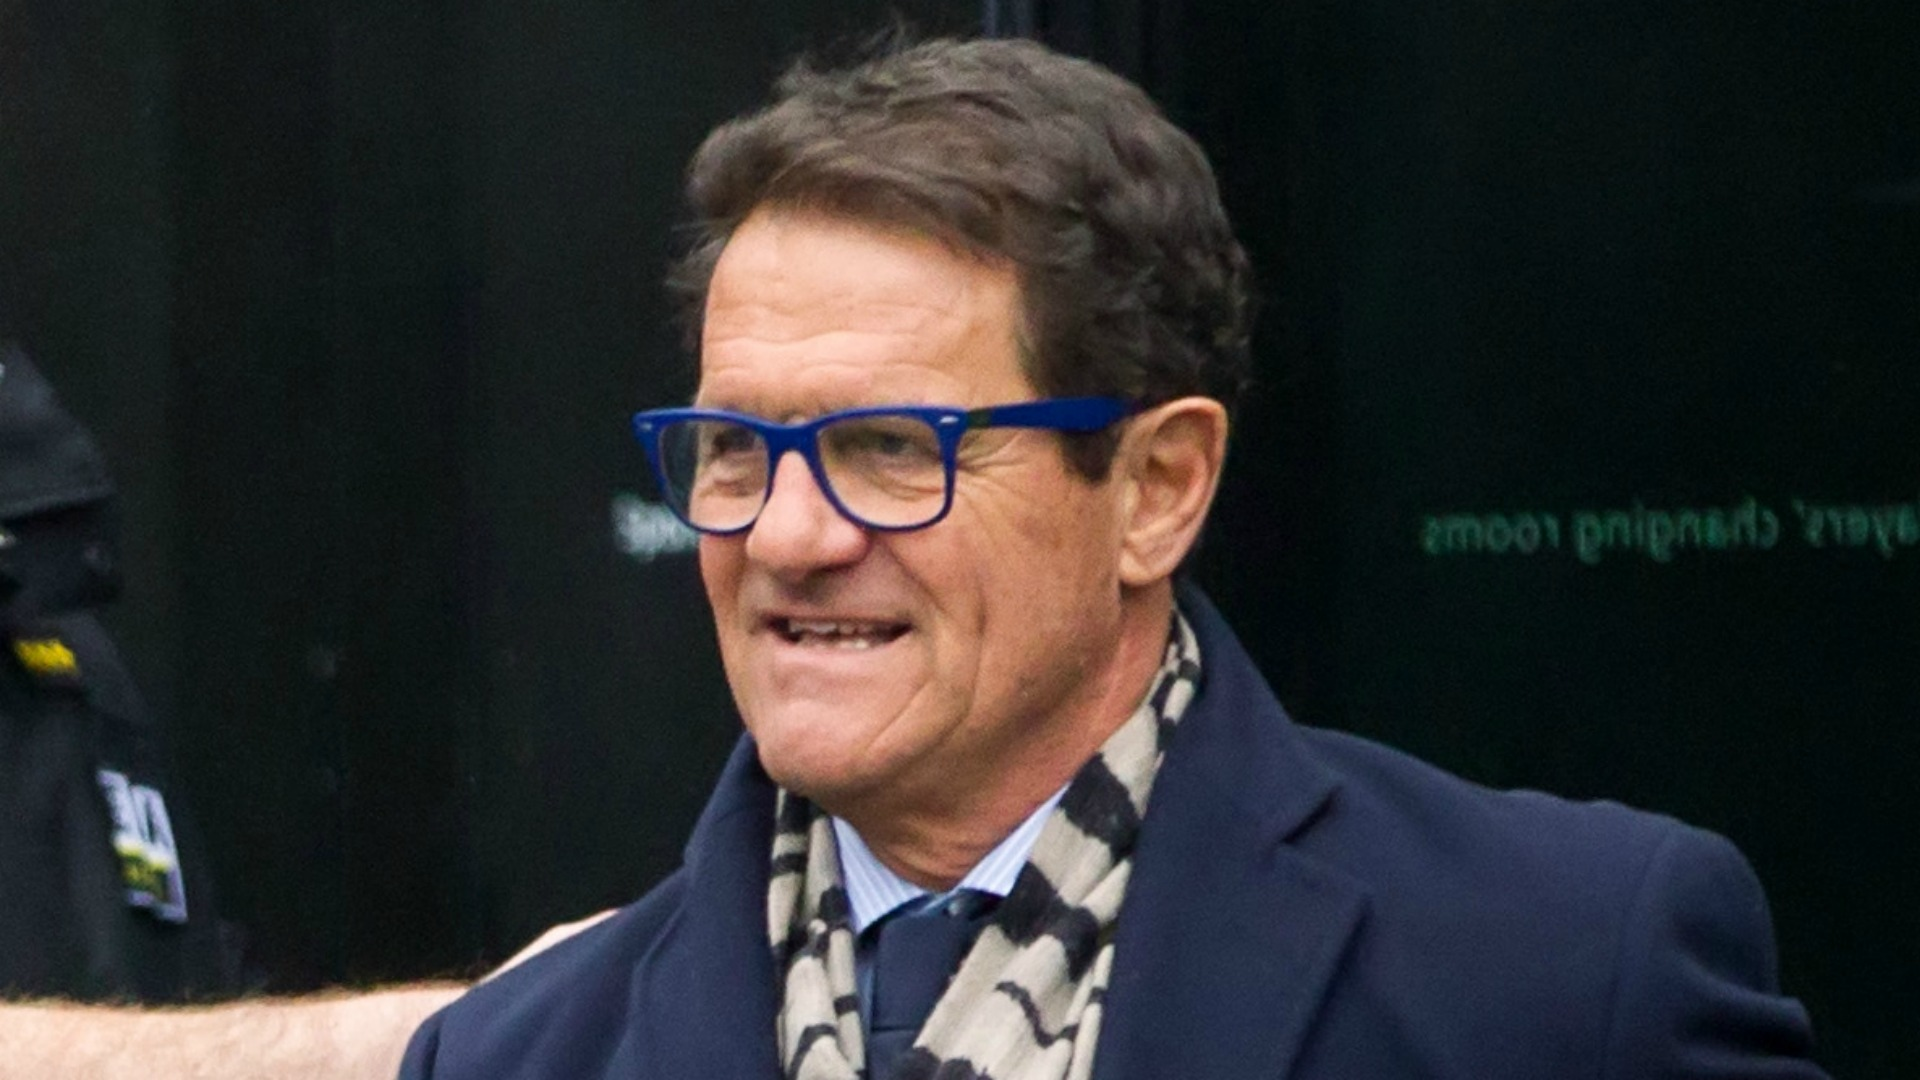 Fabio Capello said he did not blame the players of the Russian national team for failure